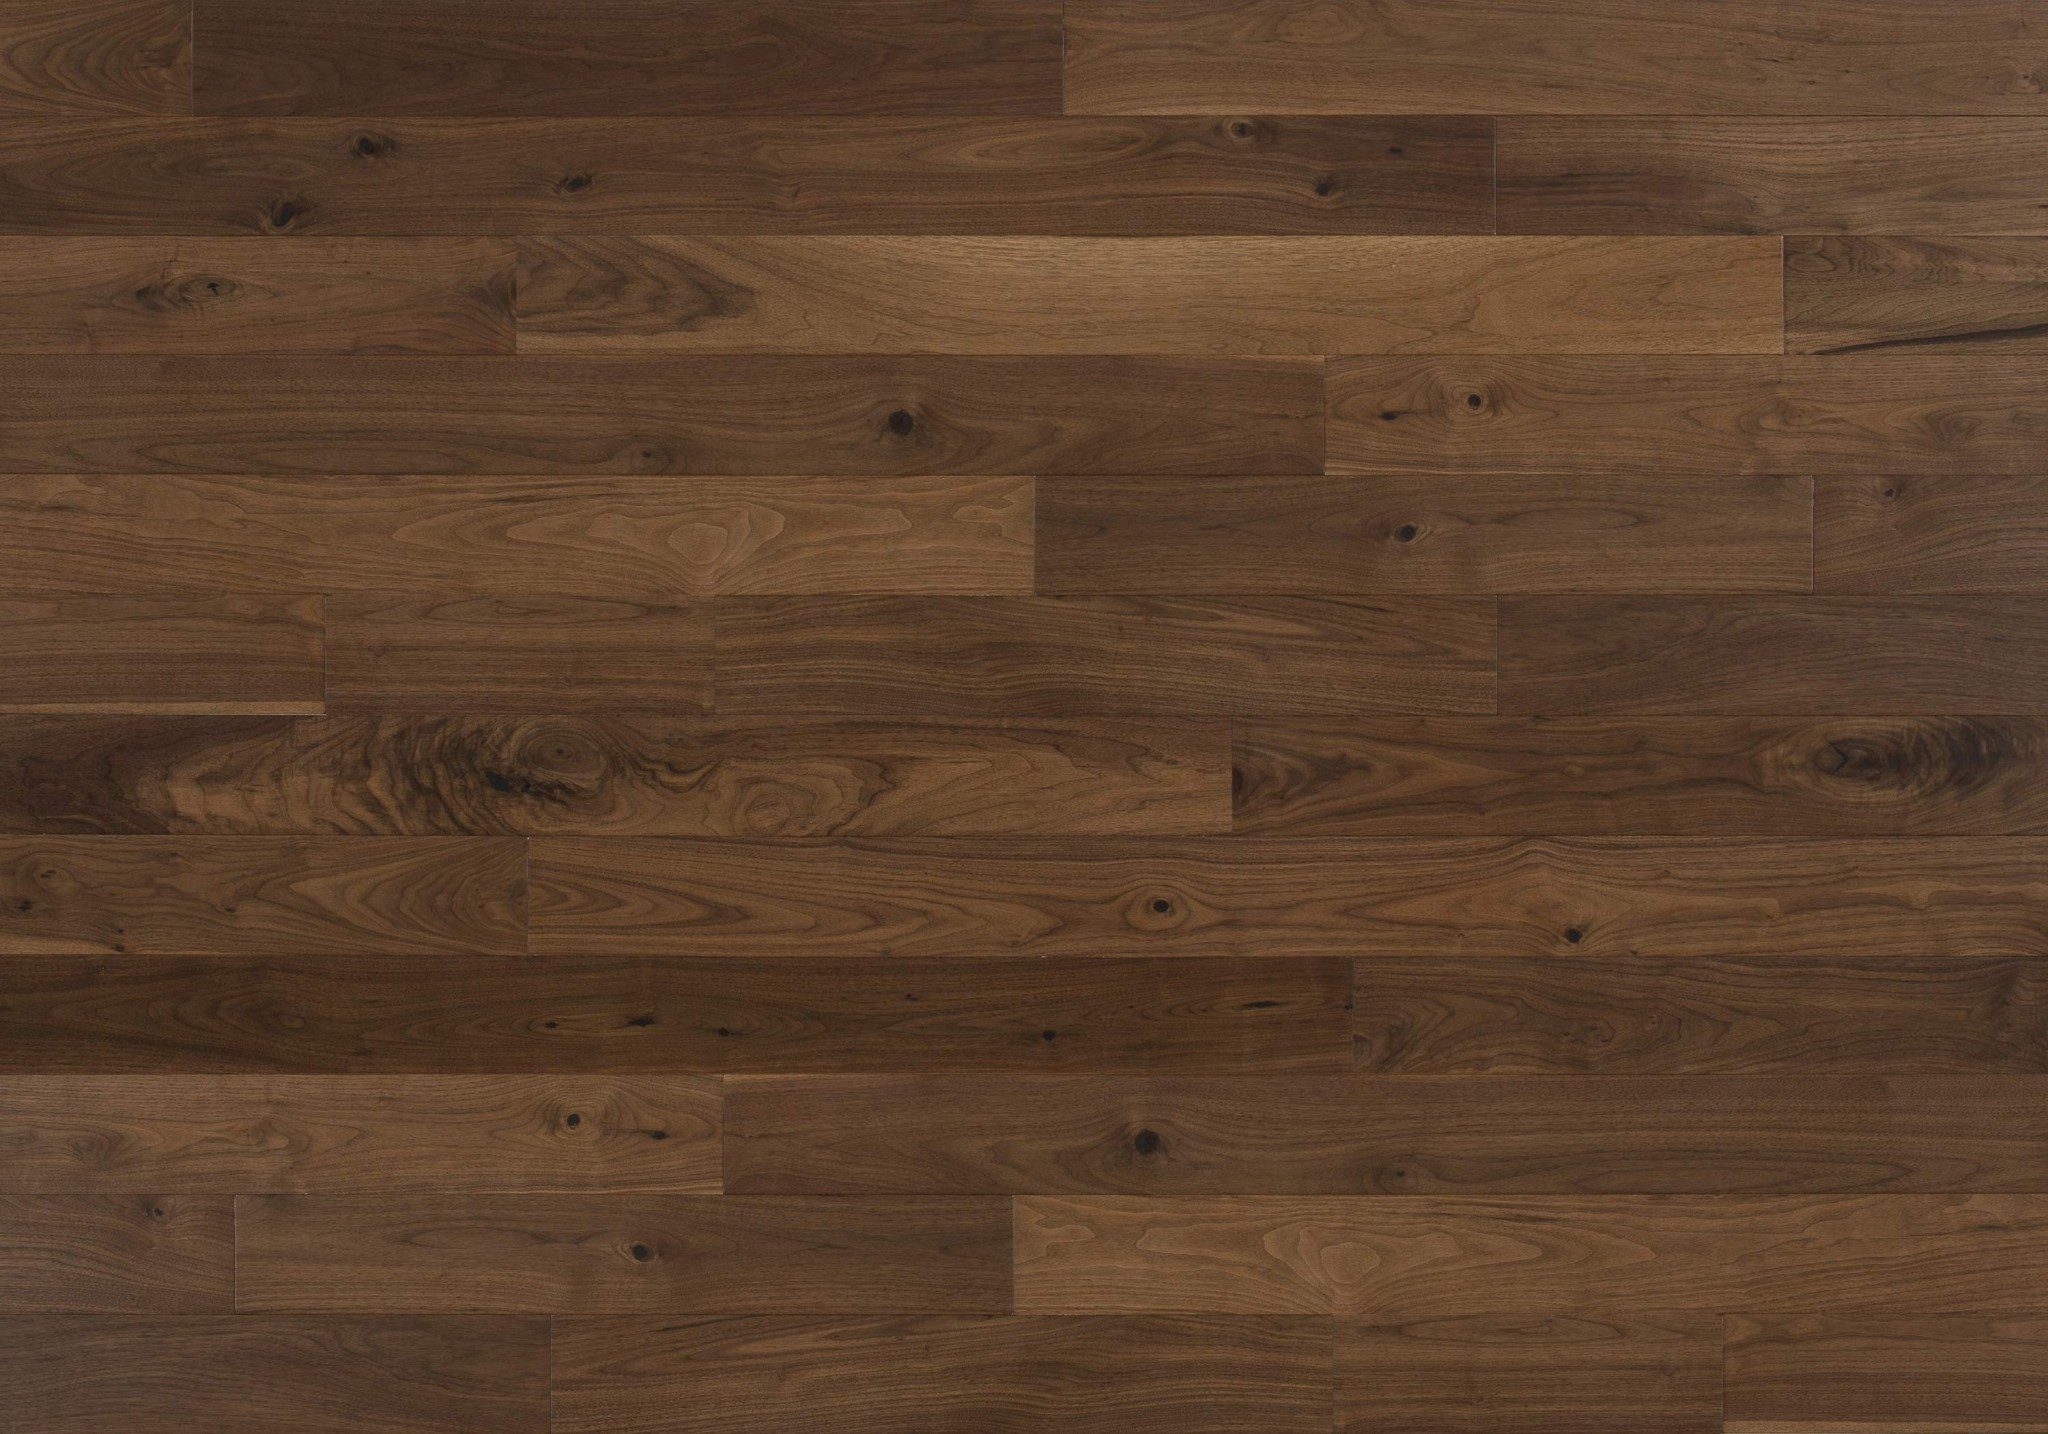 Walnut flooring and also brazilian walnut solid hardwood flooring and also solid wood flooring and also alloc flooring